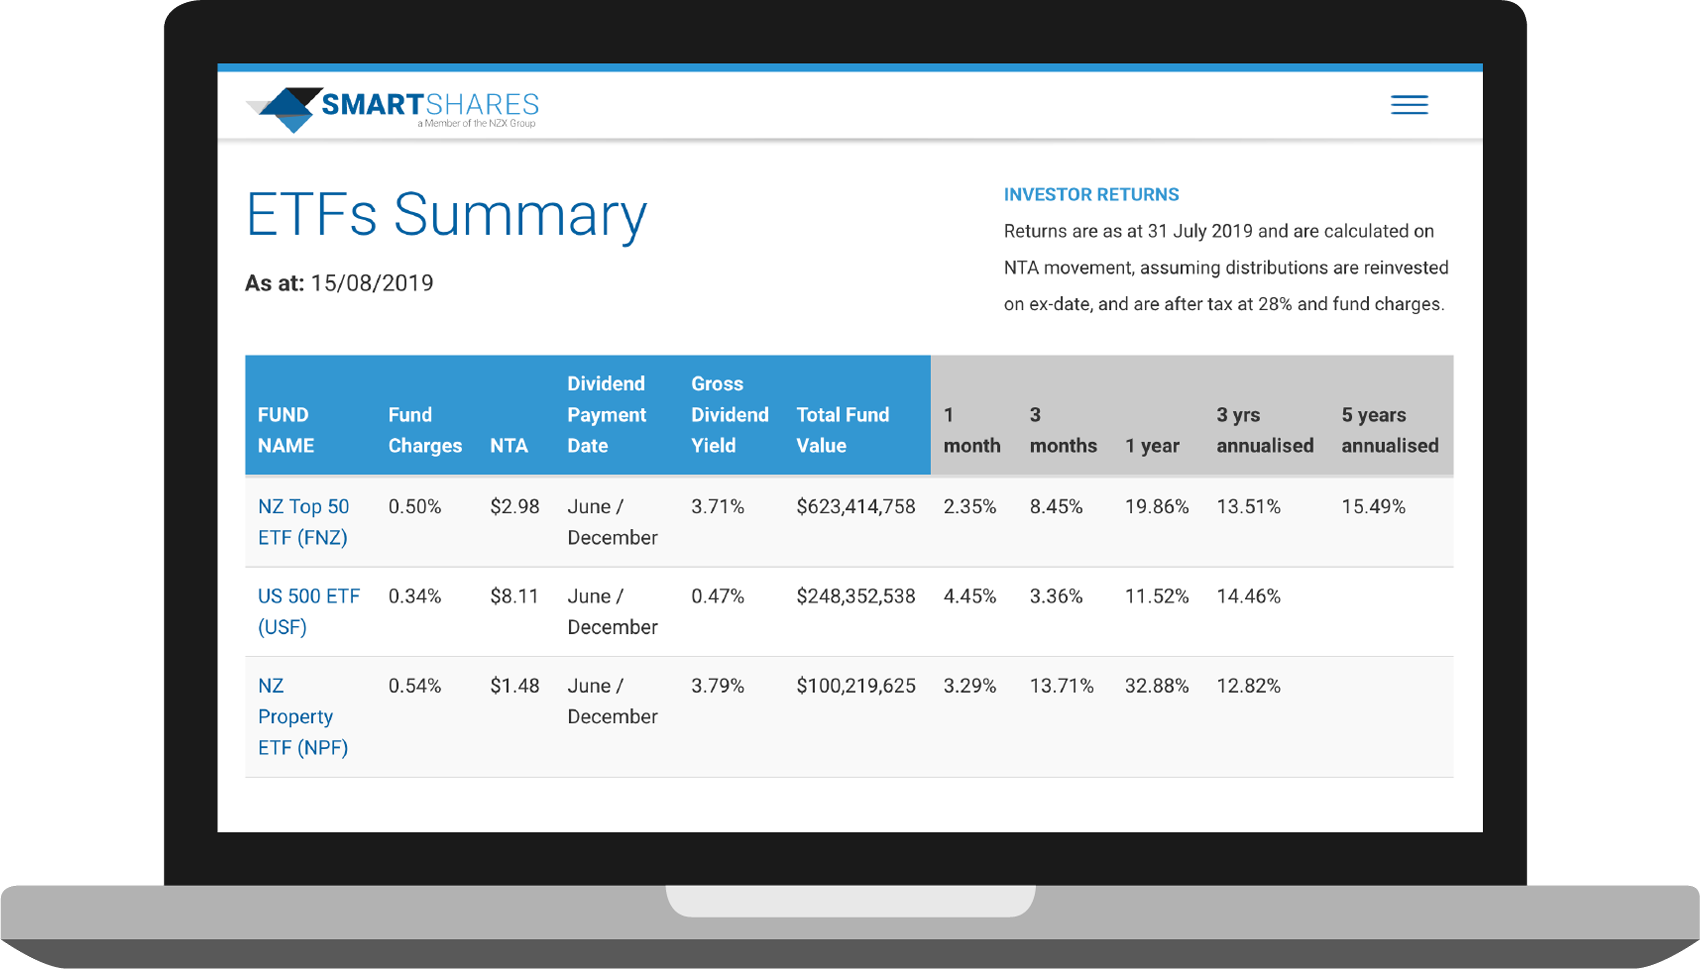 SmartShares ETFs Summary for the NZ Top 50 ETF, US 500 ETF and NZ Property ETF.